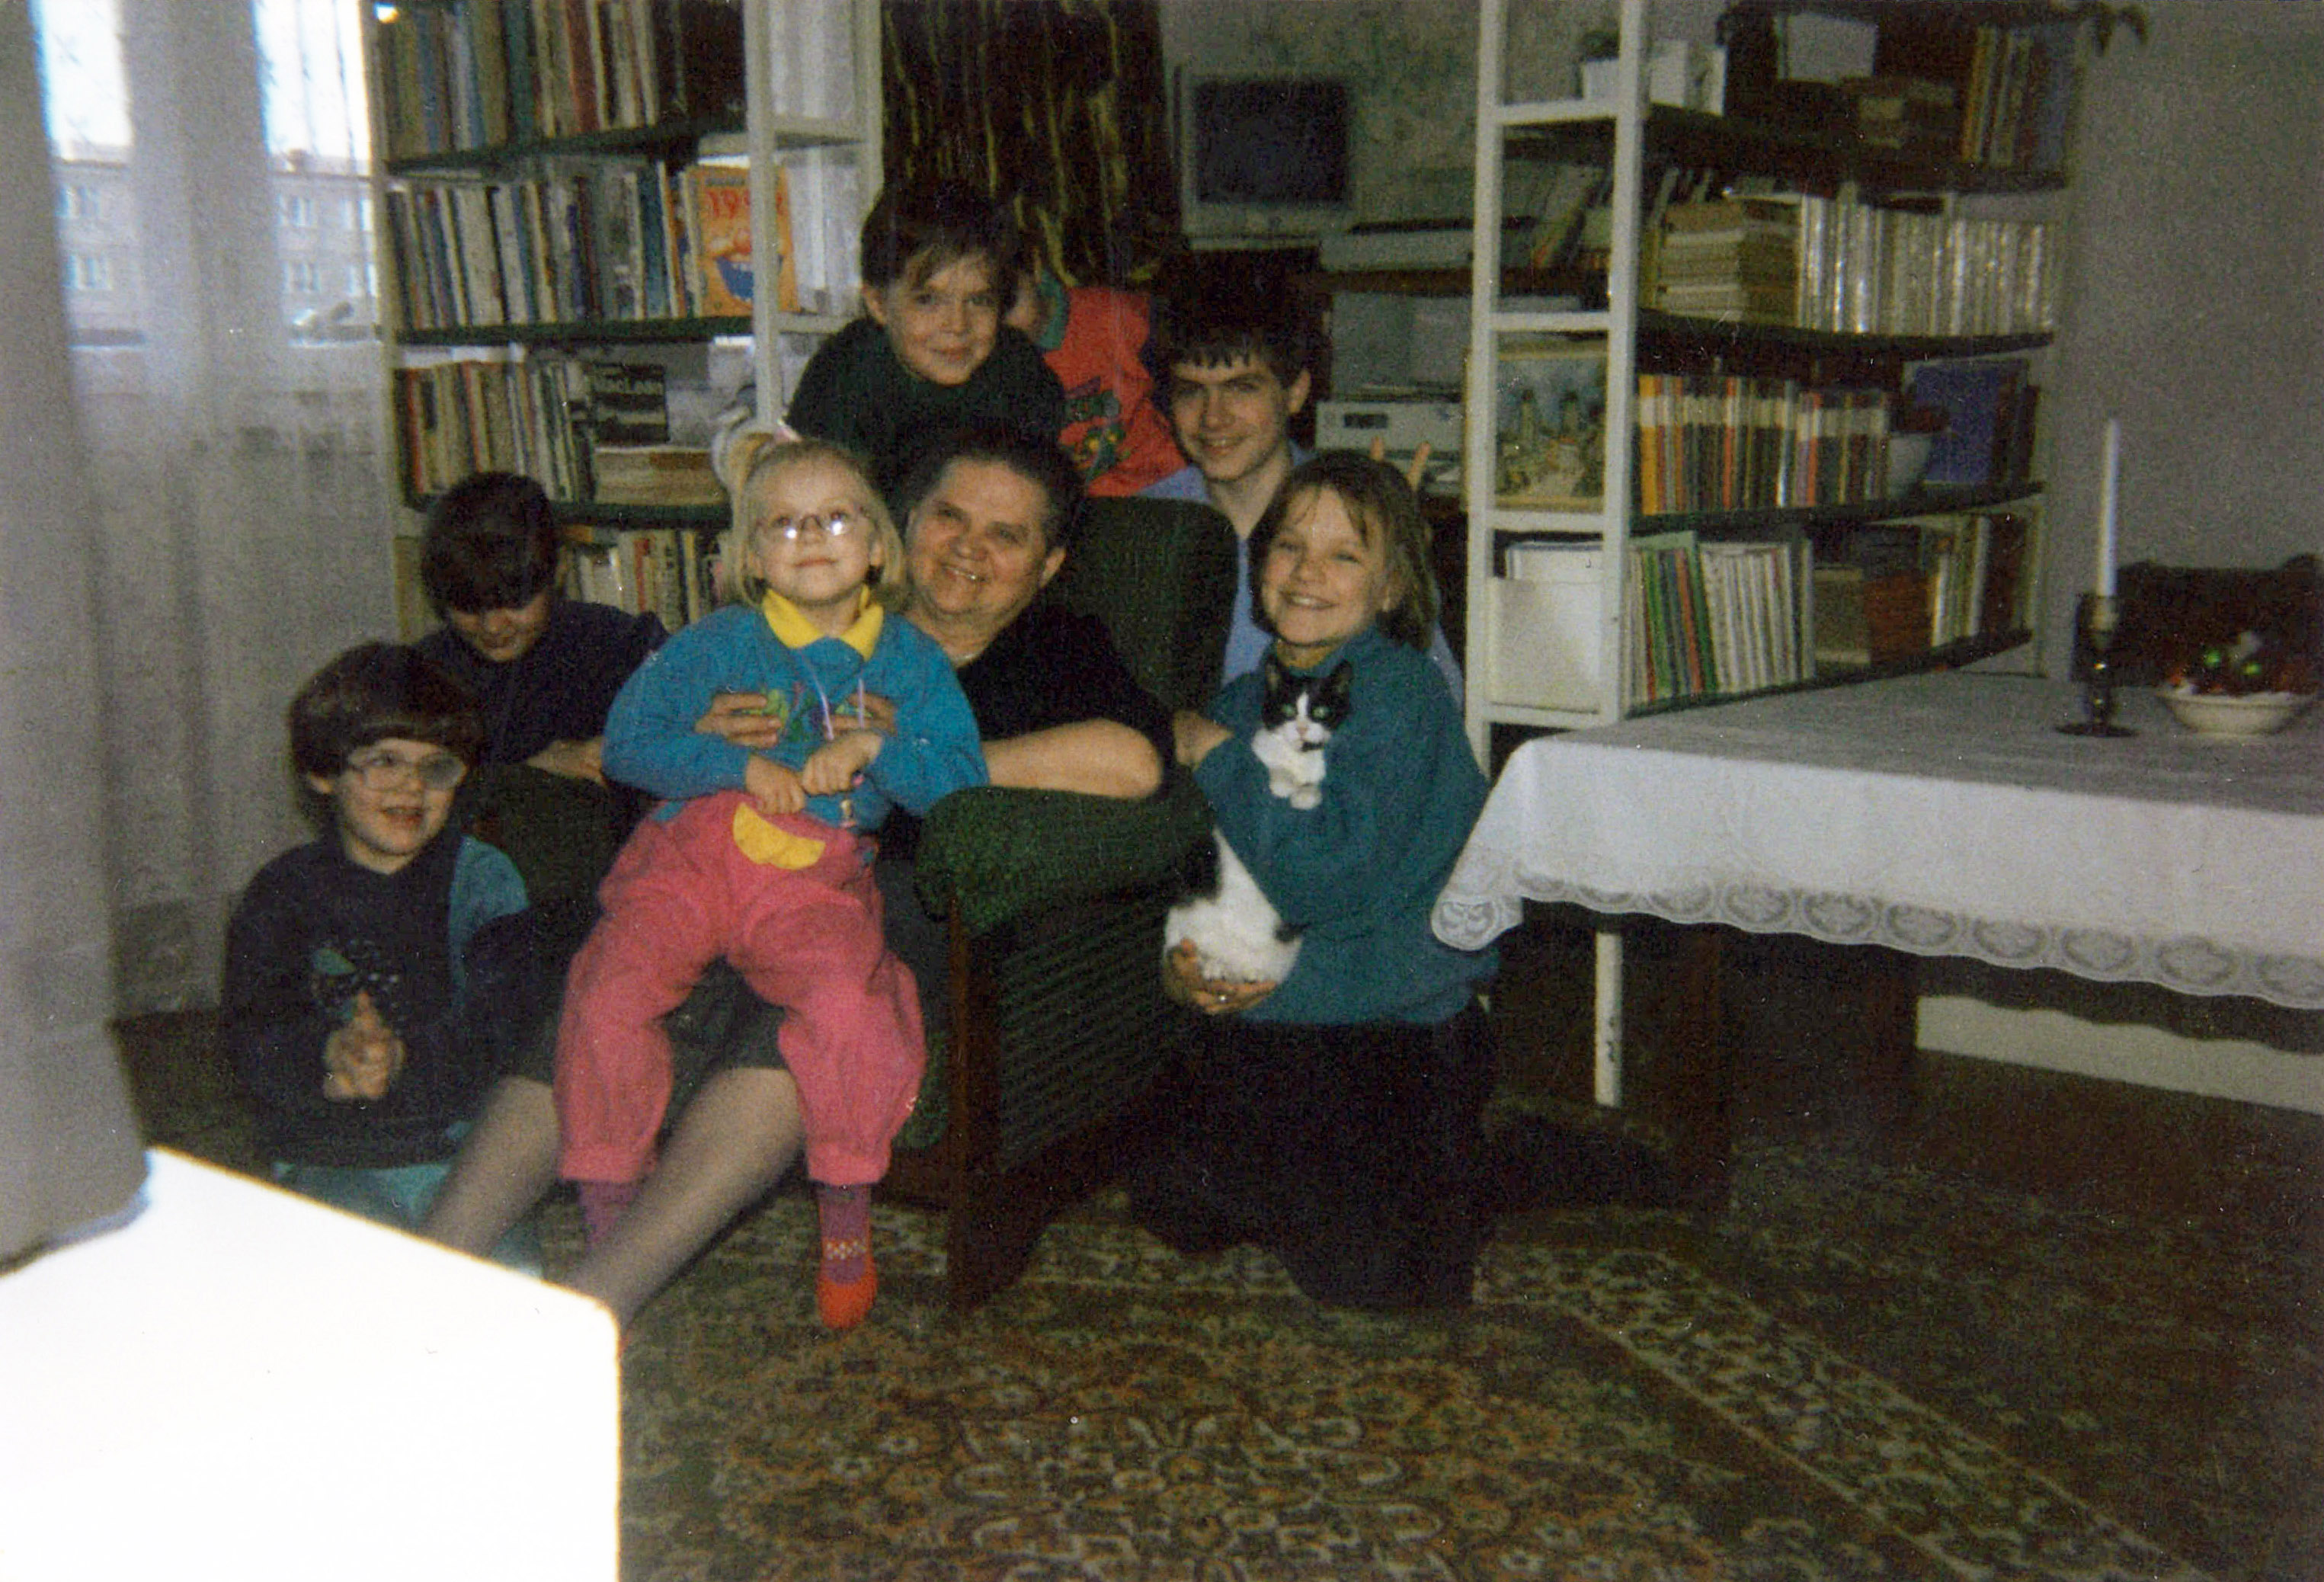 This old family photo is the only quasi appearance of the Larry computer and the keyboard